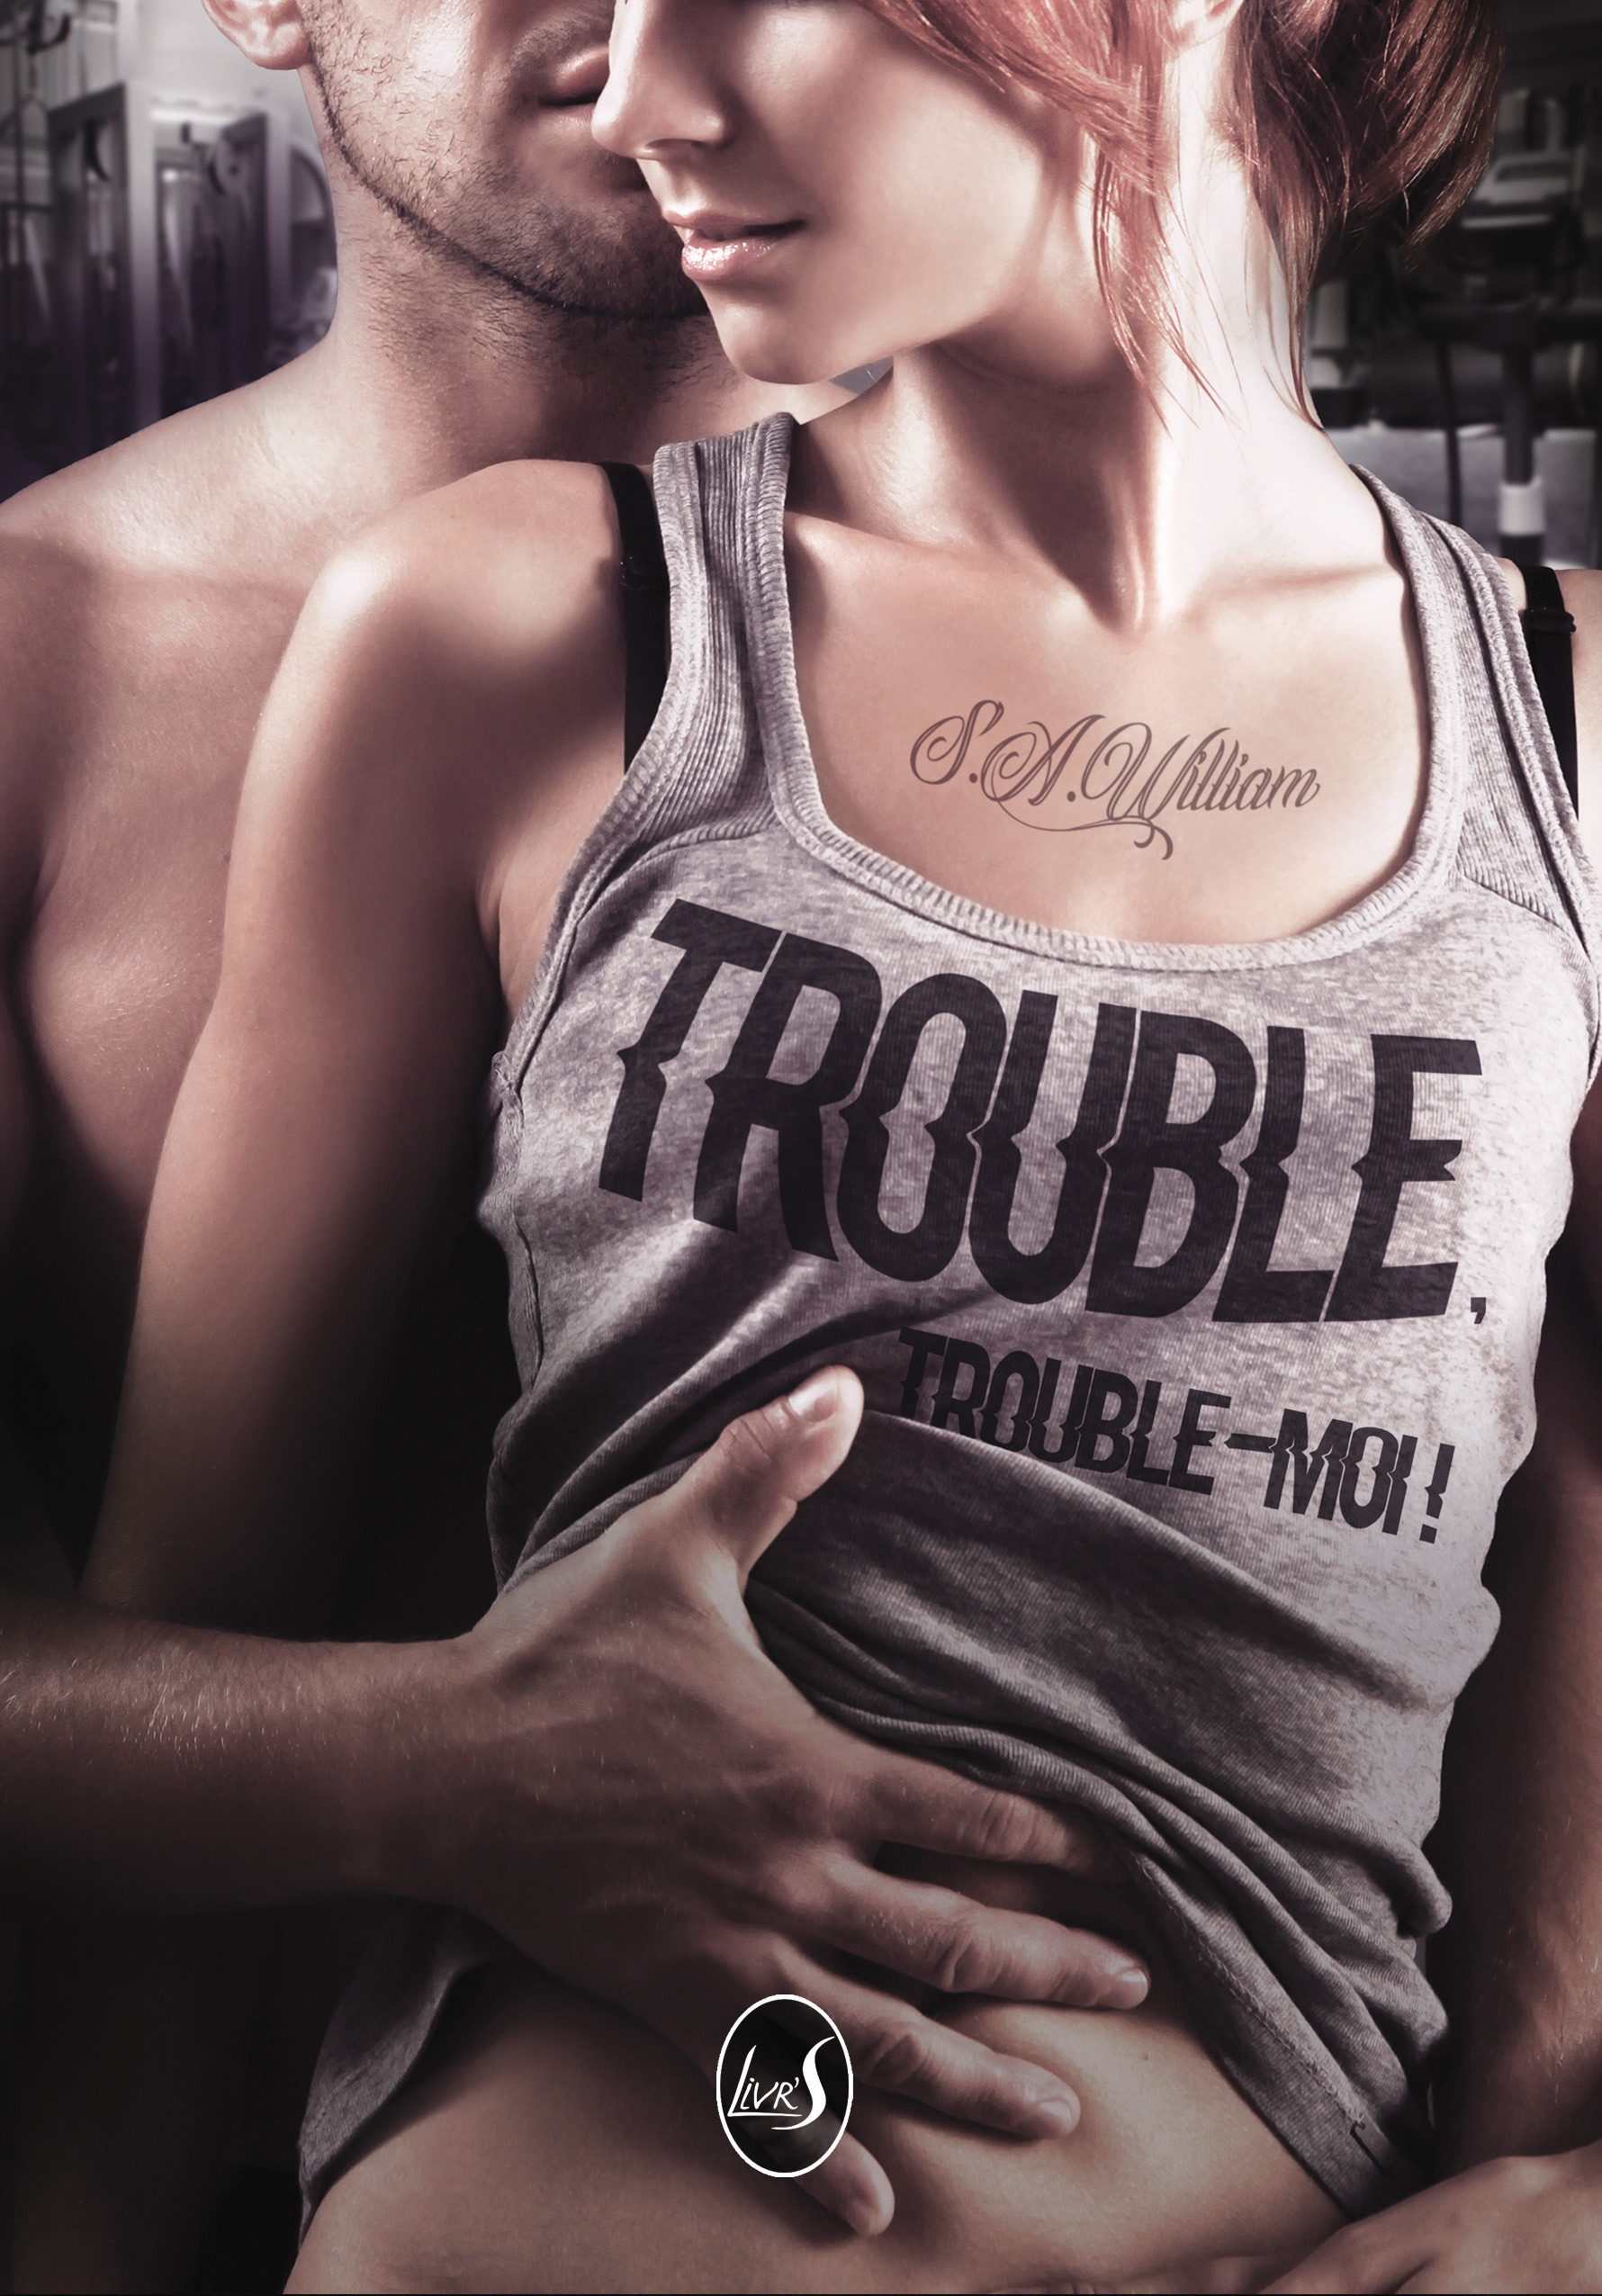 Trouble, trouble-moi !  - William S.A.